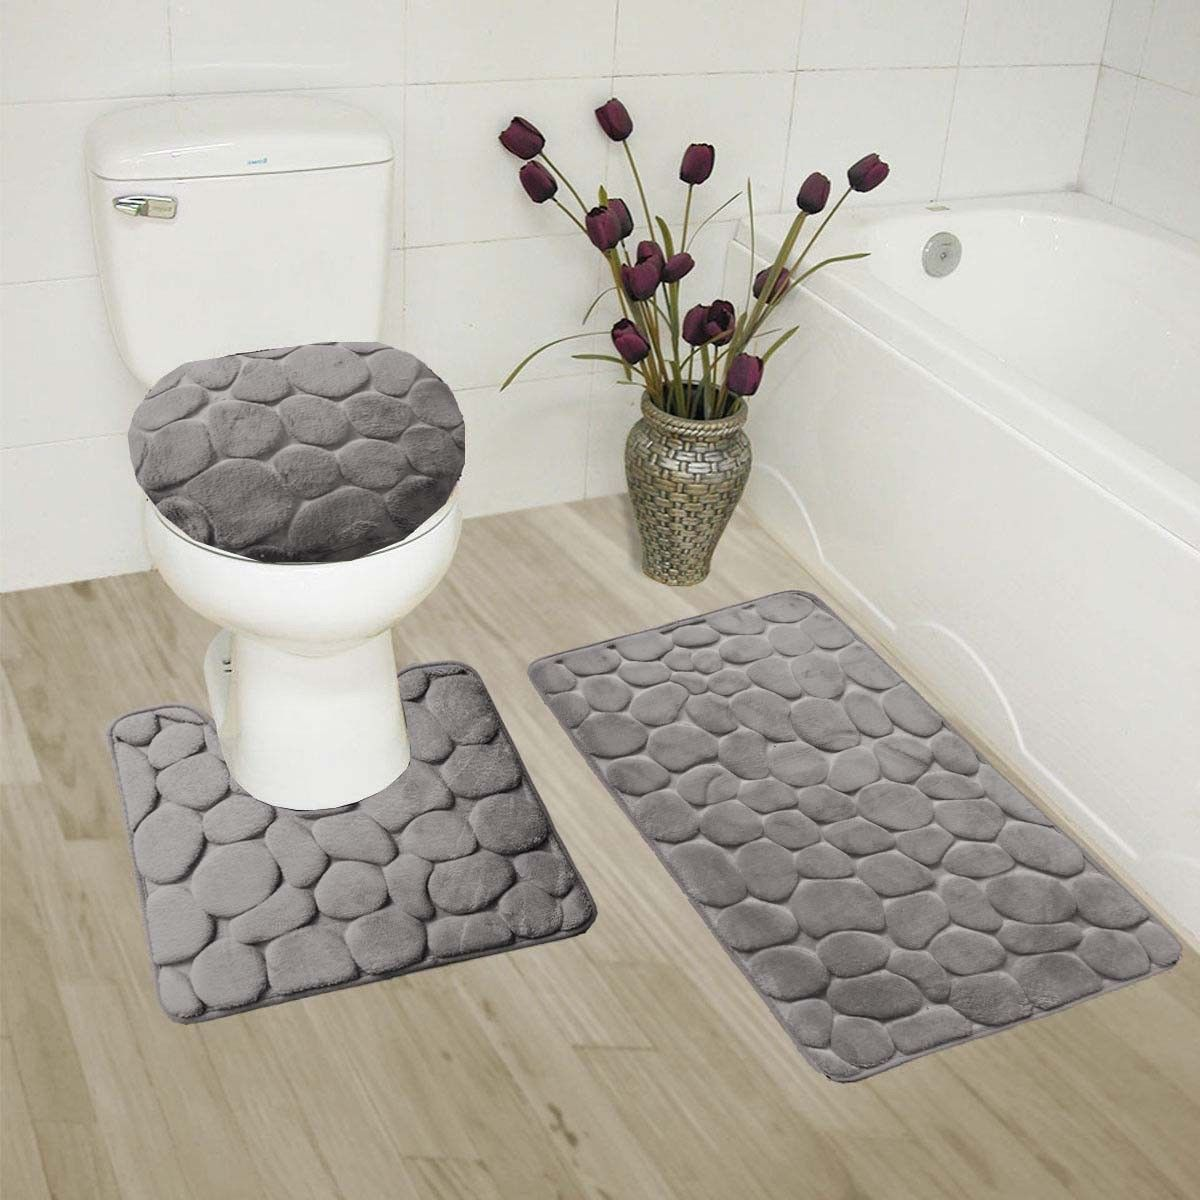 "ROCK GREY 3-Piece Embossed Bathroom Rug Set Super Soft Memory Foam Bath Mat, Rug 19""x 30"", Contour Mat 19""x19"" and Toilet Lid Cover 19""x19"" with Non-Skid Rubber Back"